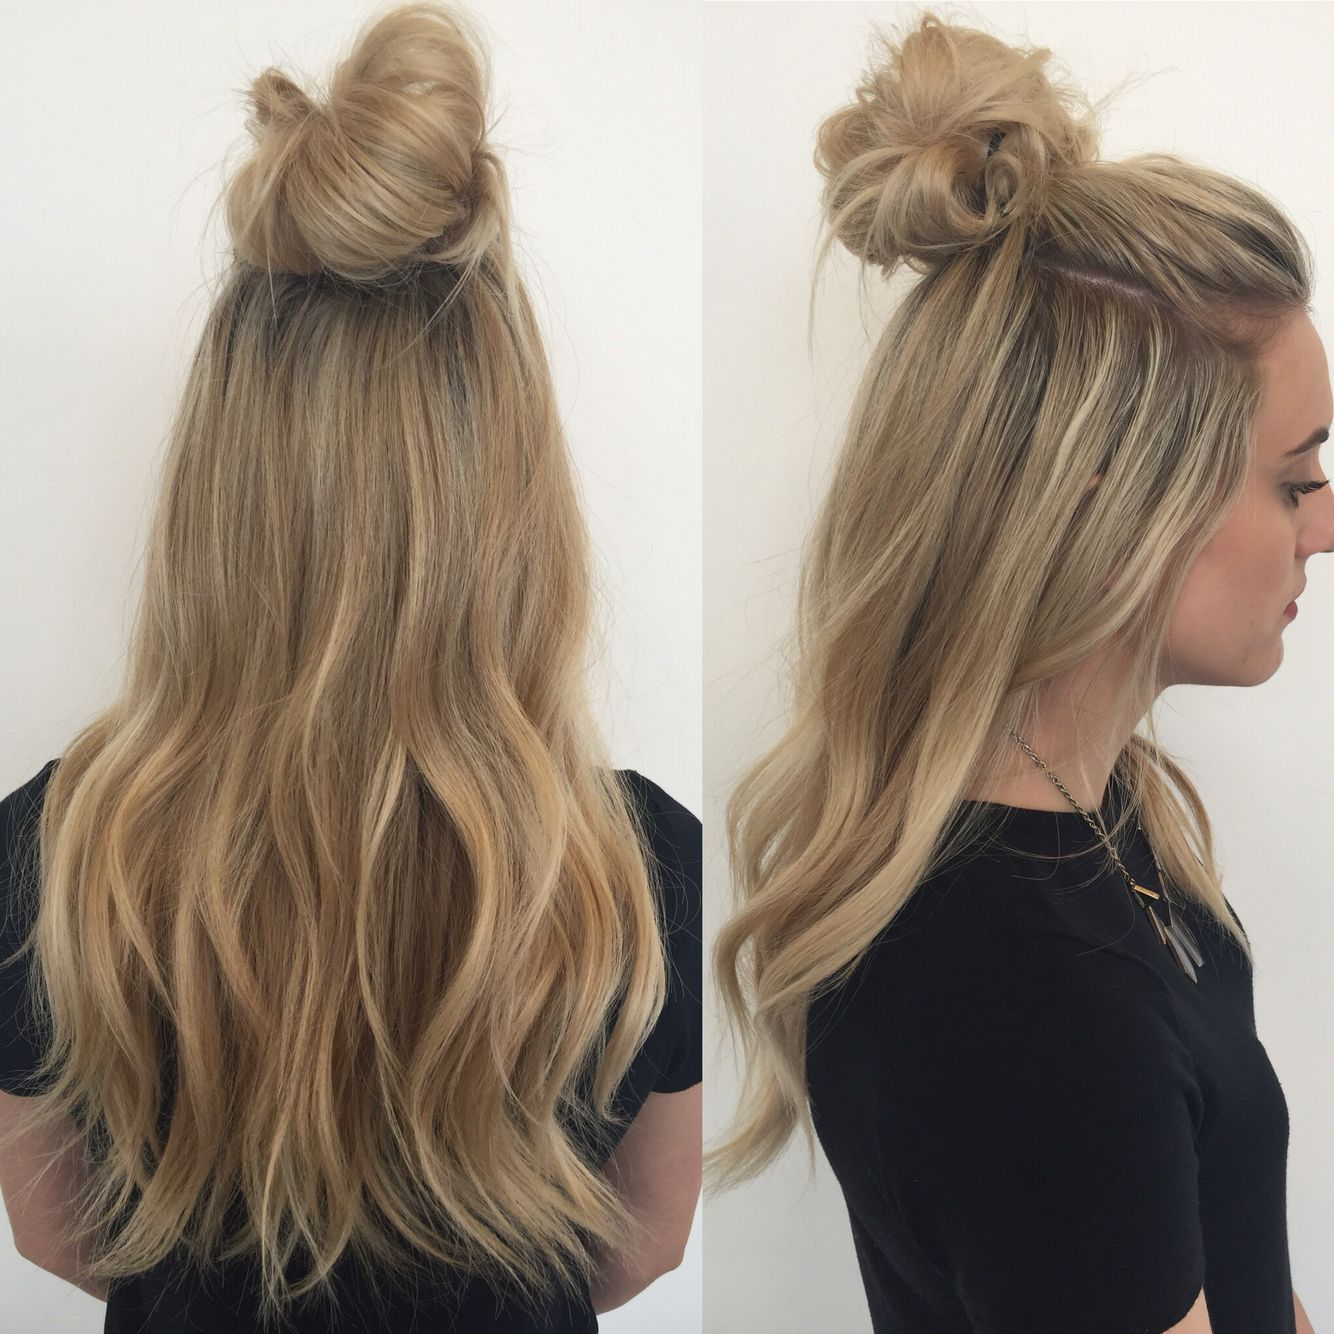 top knot extensions// hair extensions// hairstylist // clip